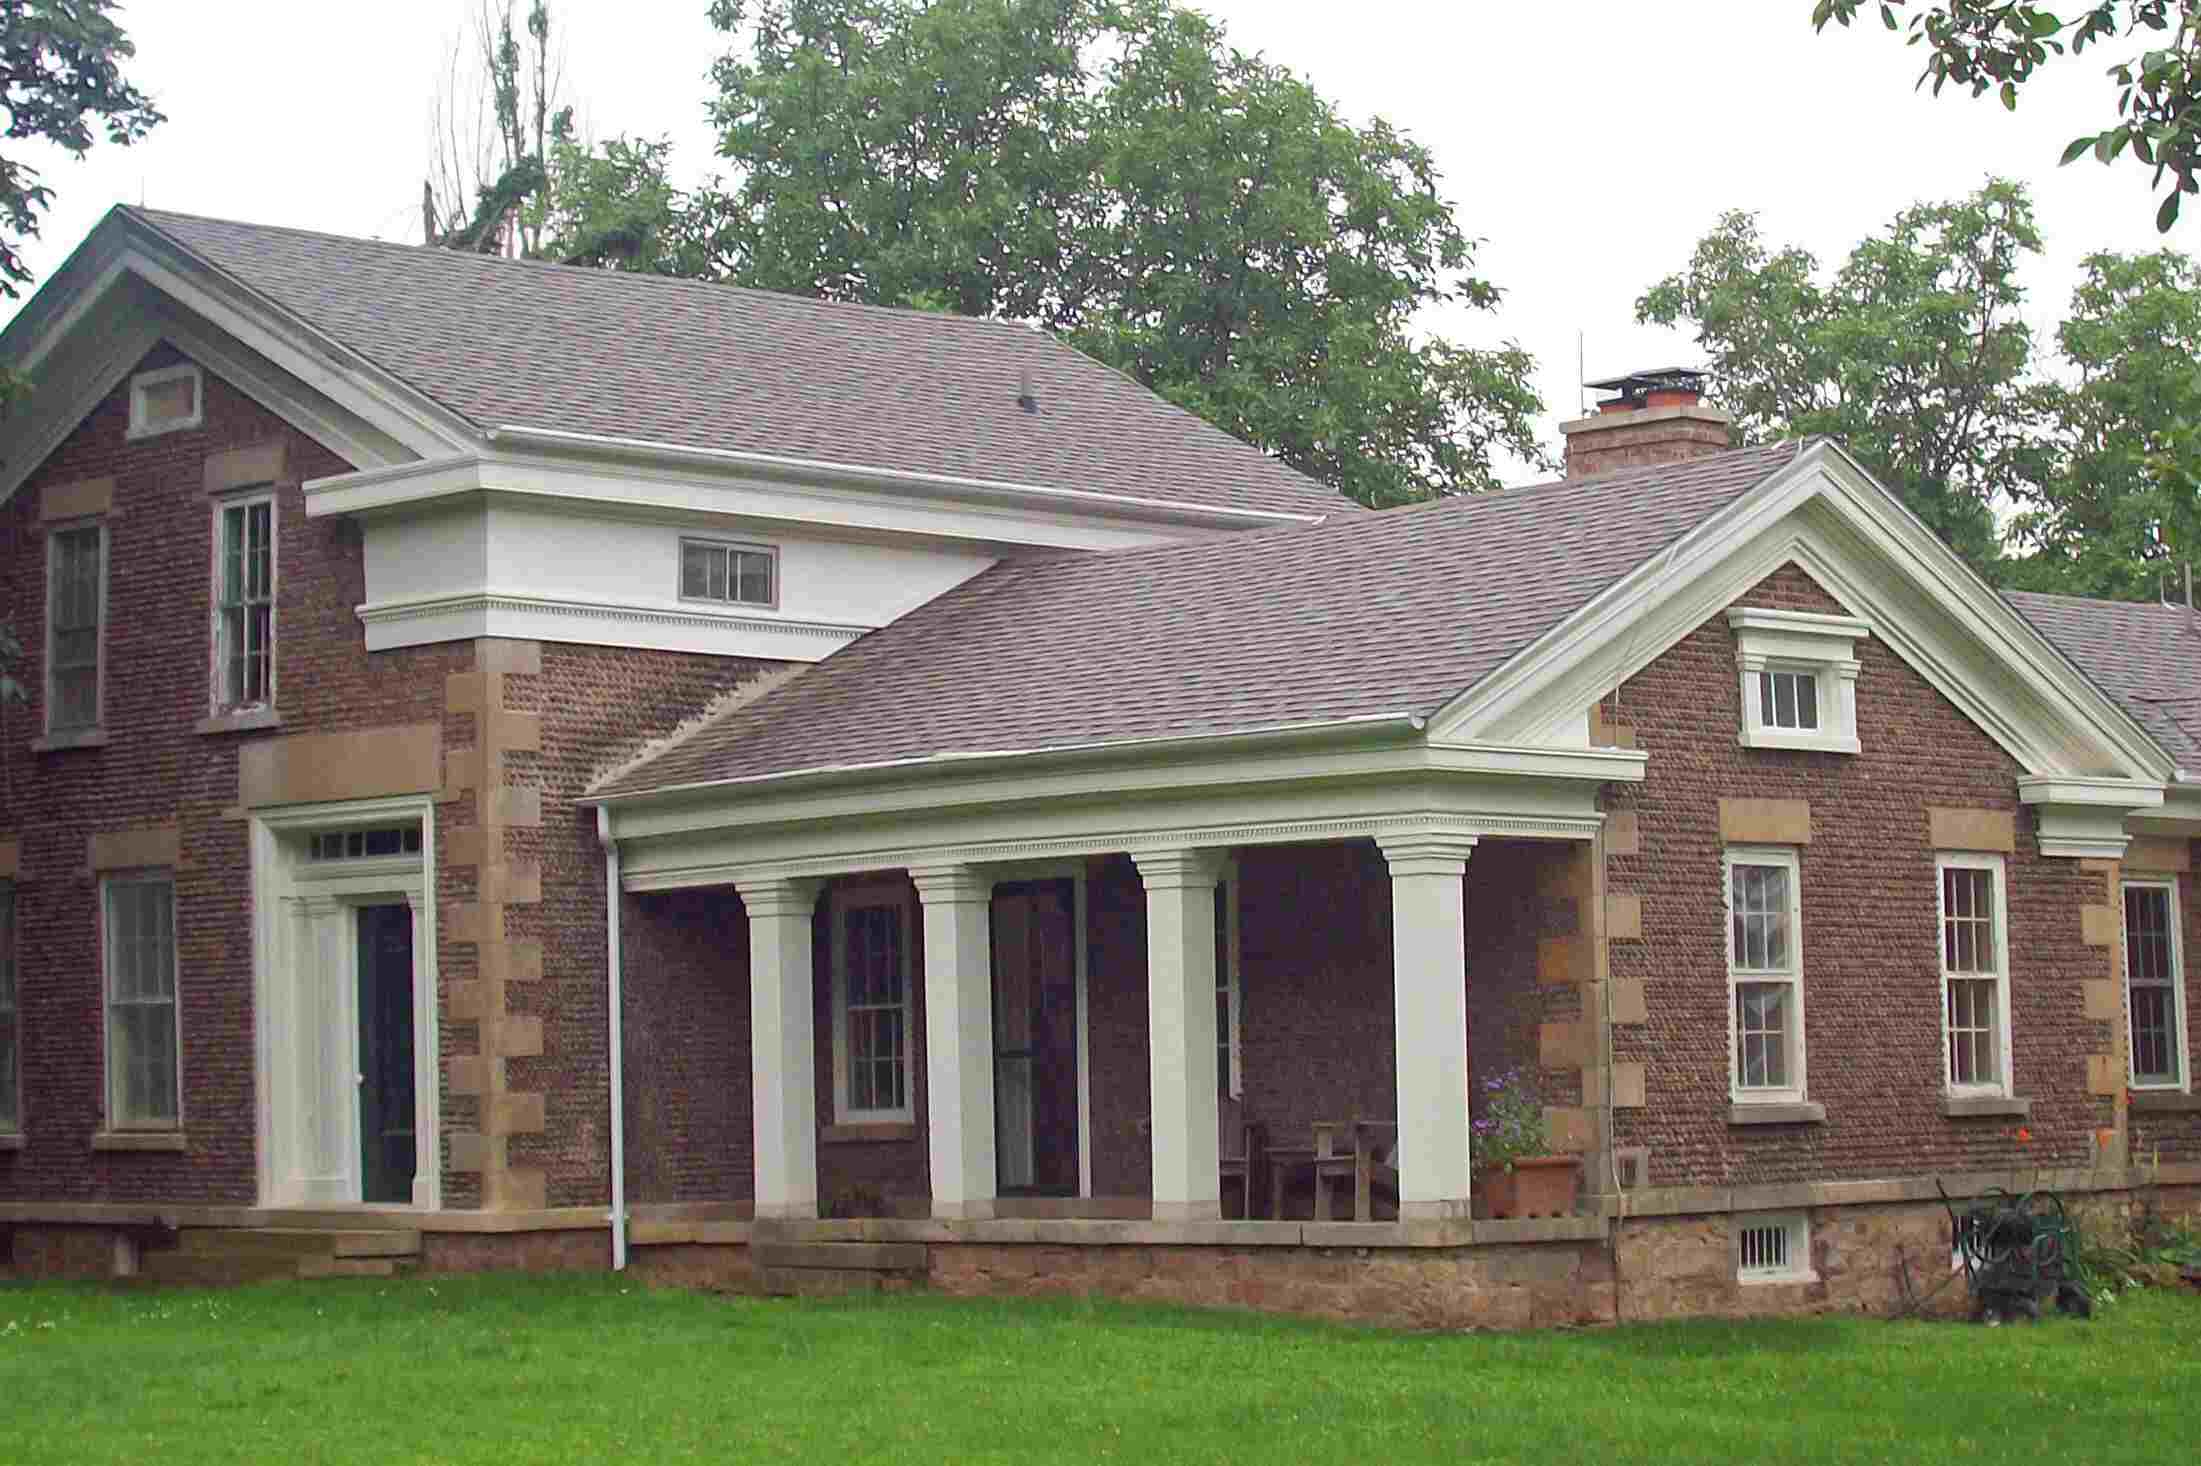 about the cobblestone houses in new york and other states